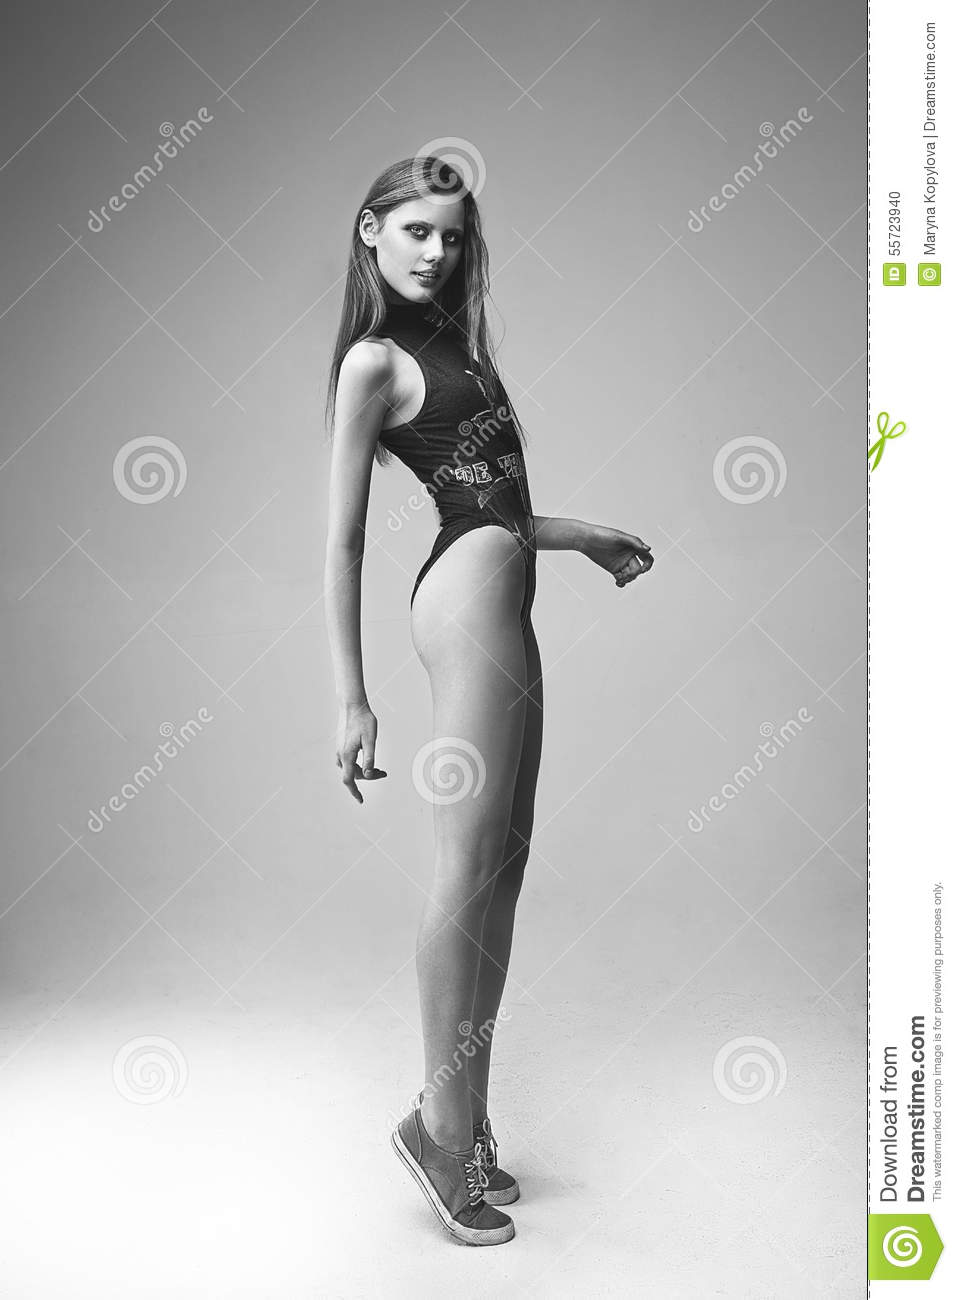 Beautiful Skinny Woman Standing On Tiptoes Stock Photo - Image ...